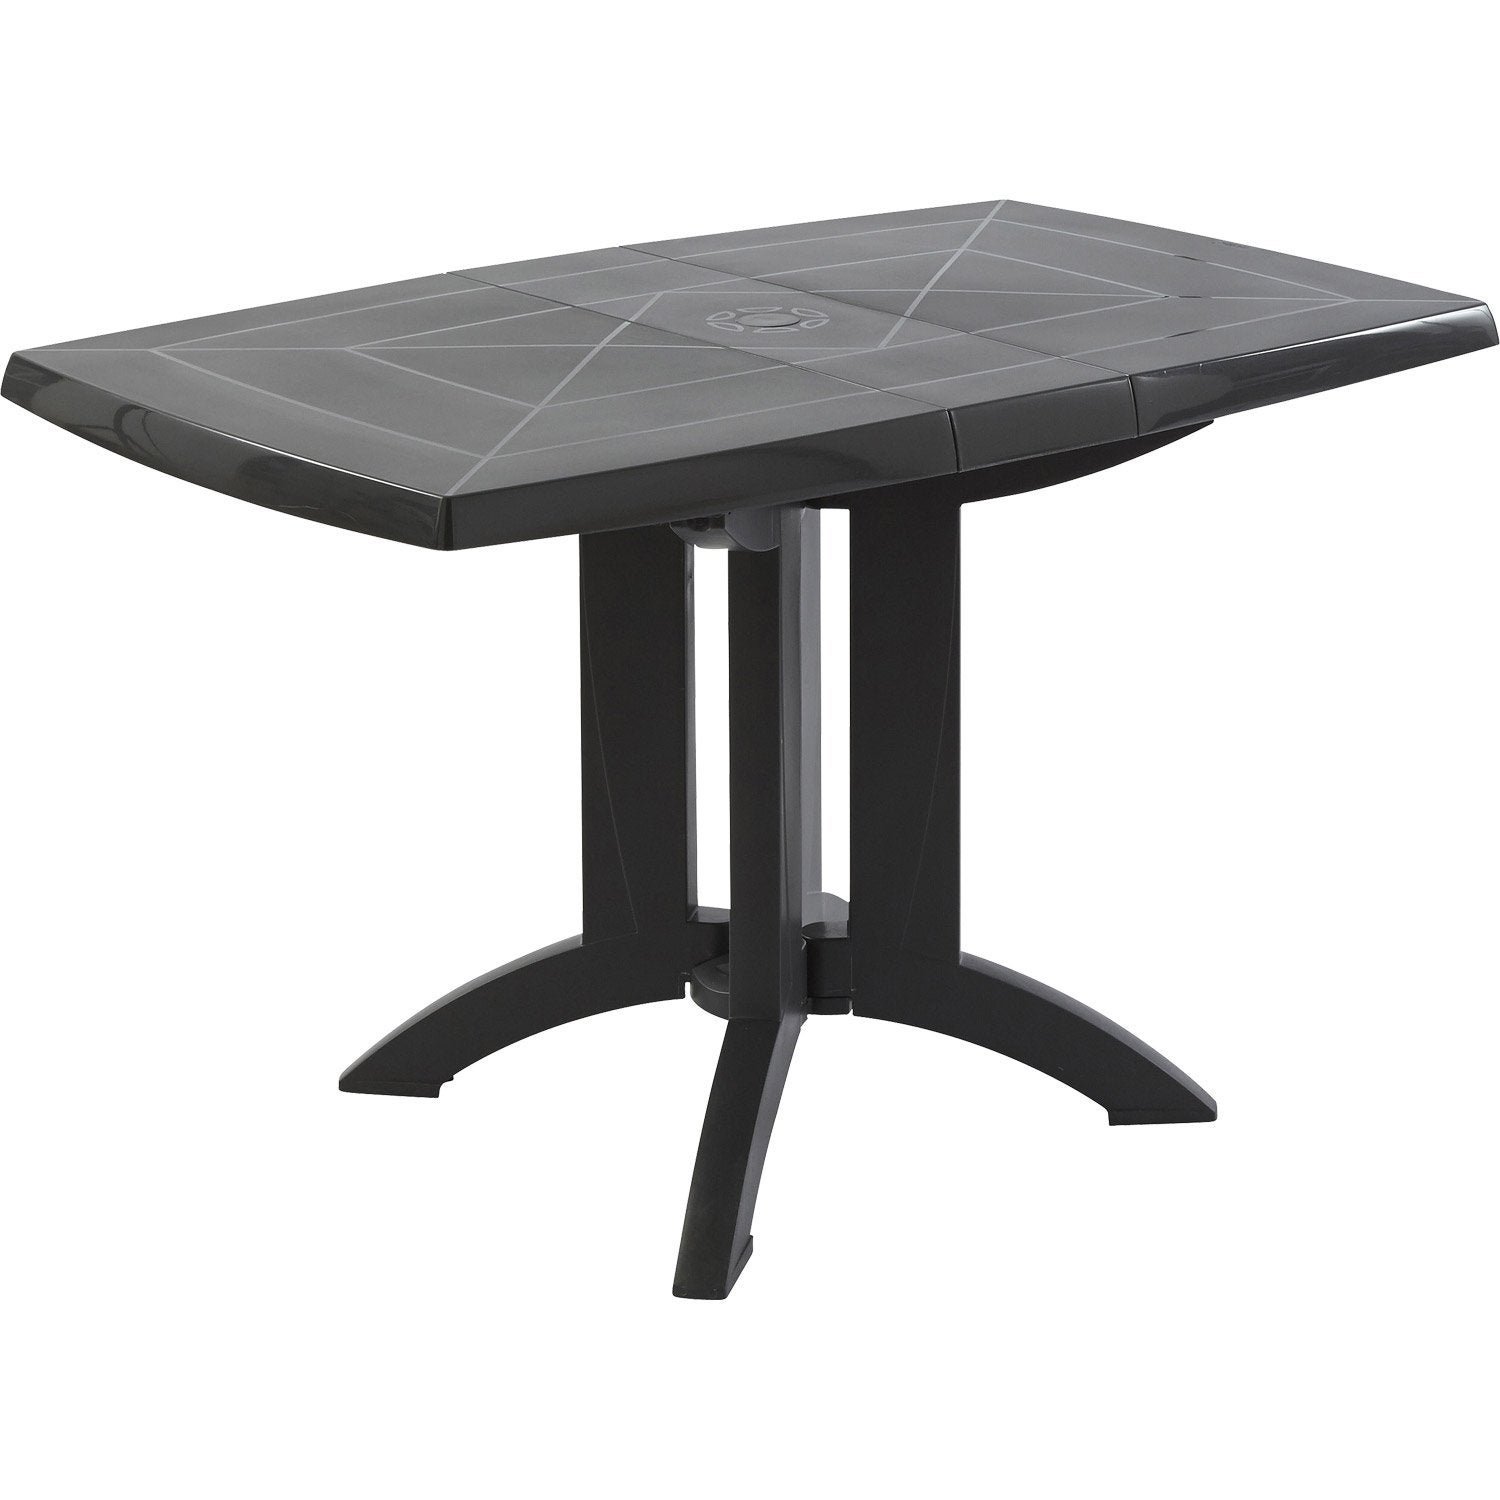 Table de jardin grosfillex v ga rectangulaire anthracite 4 personnes leroy merlin - Table jardin leclerc rennes ...